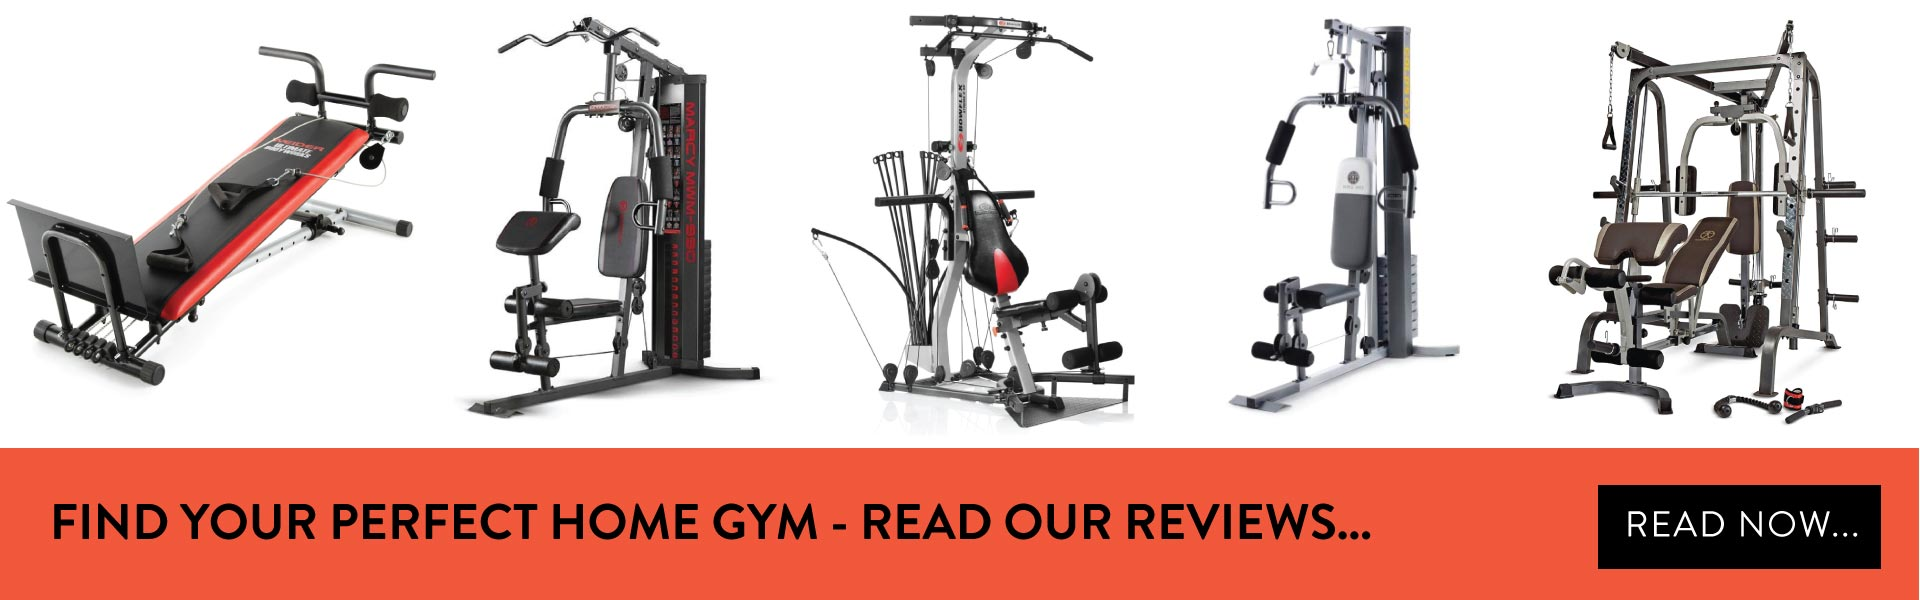 best home gym reviews 2018